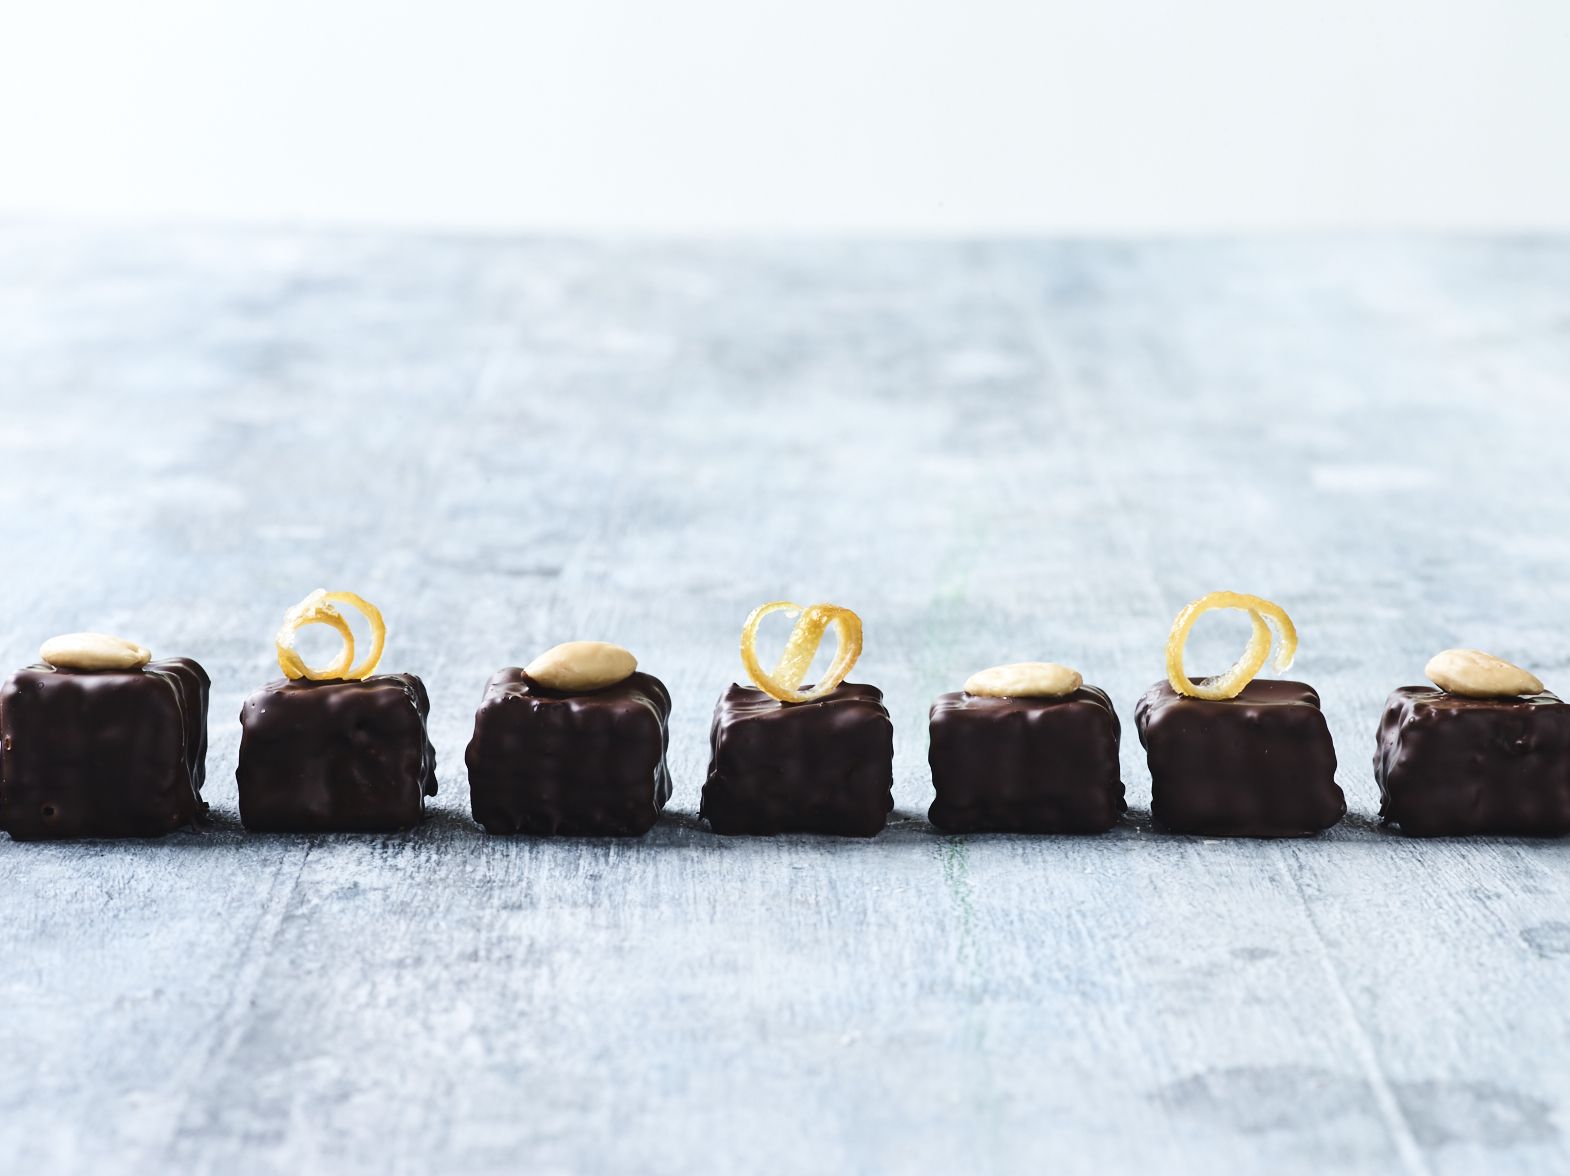 Make your own chocolate treats